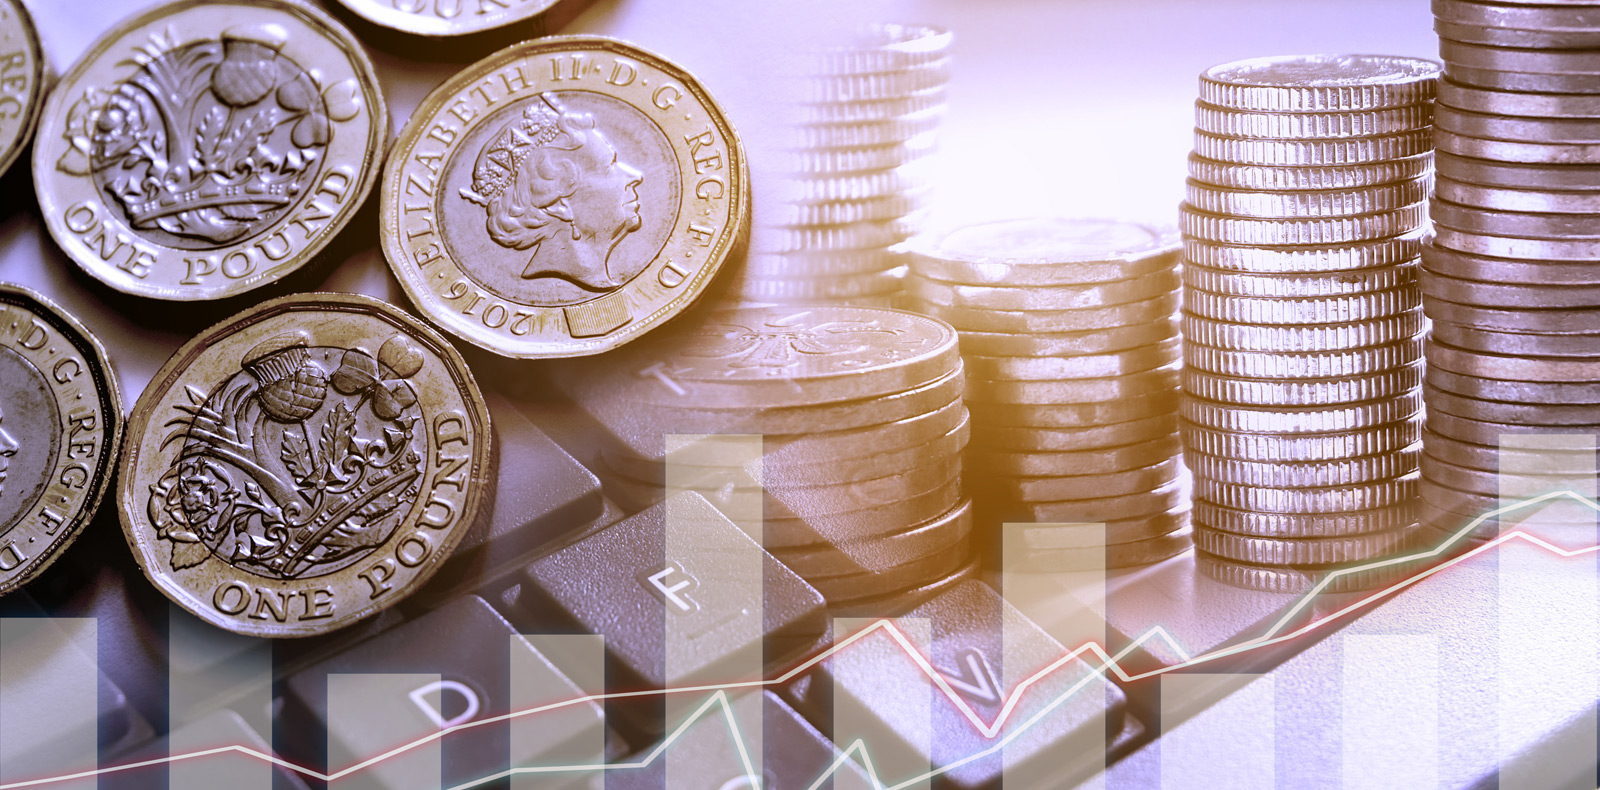 Sterling lost value against the euro and US dollar at the start of the week despite signs of UK economic recovery.